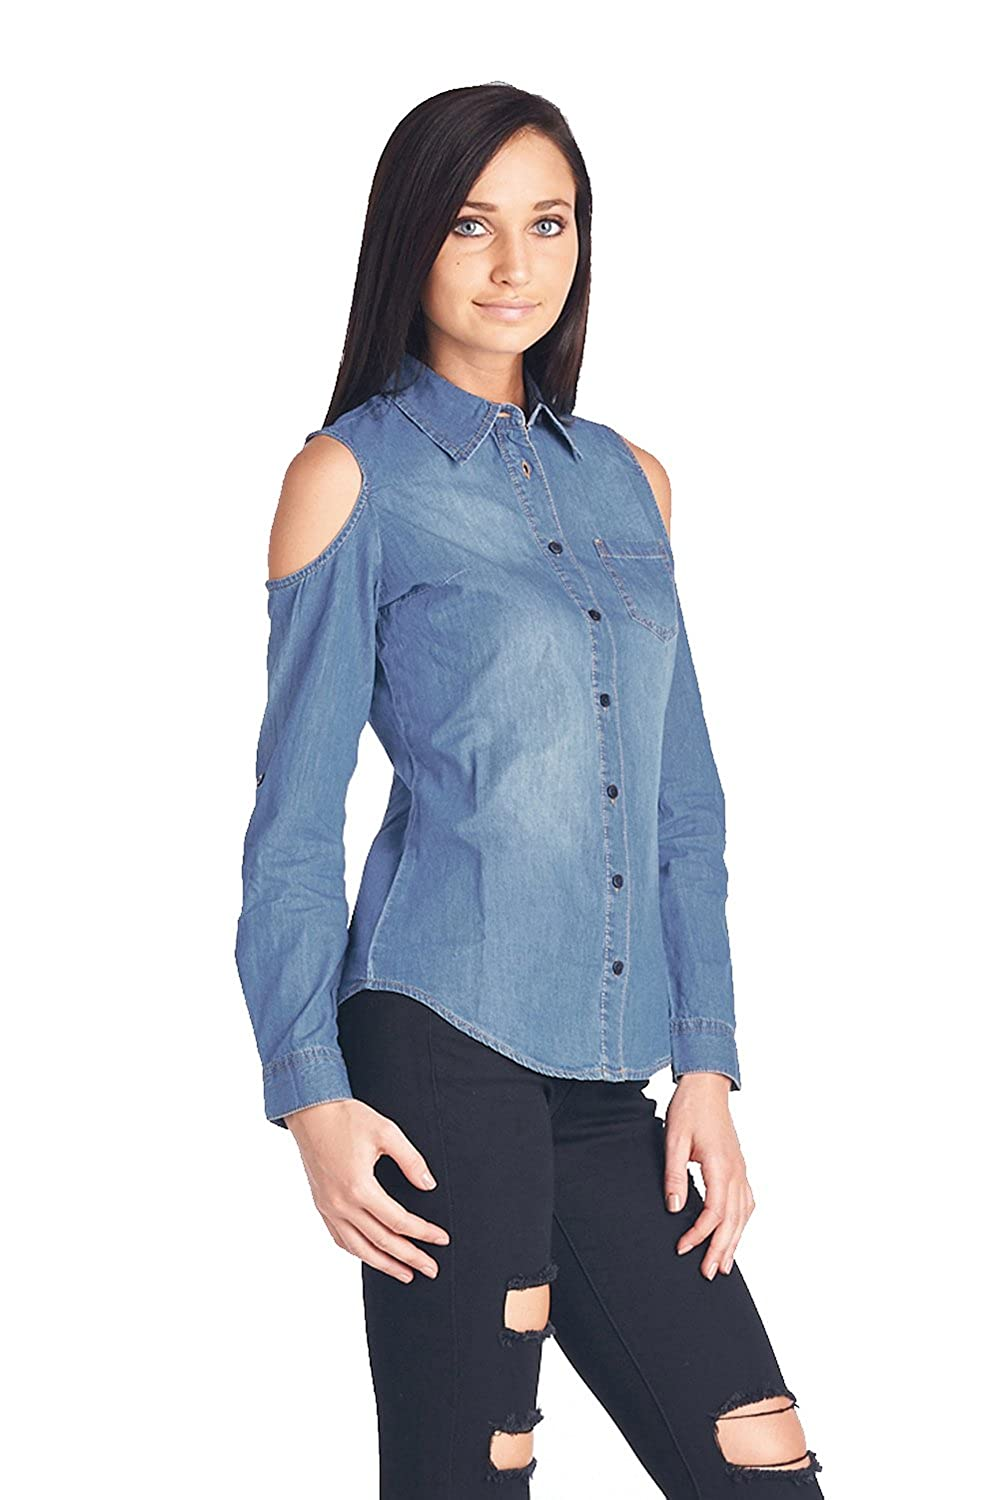 d4796eb0438 Blue Age Womens Chambray Denim Shirt Blouse Denim Tops at Amazon Women s  Clothing store